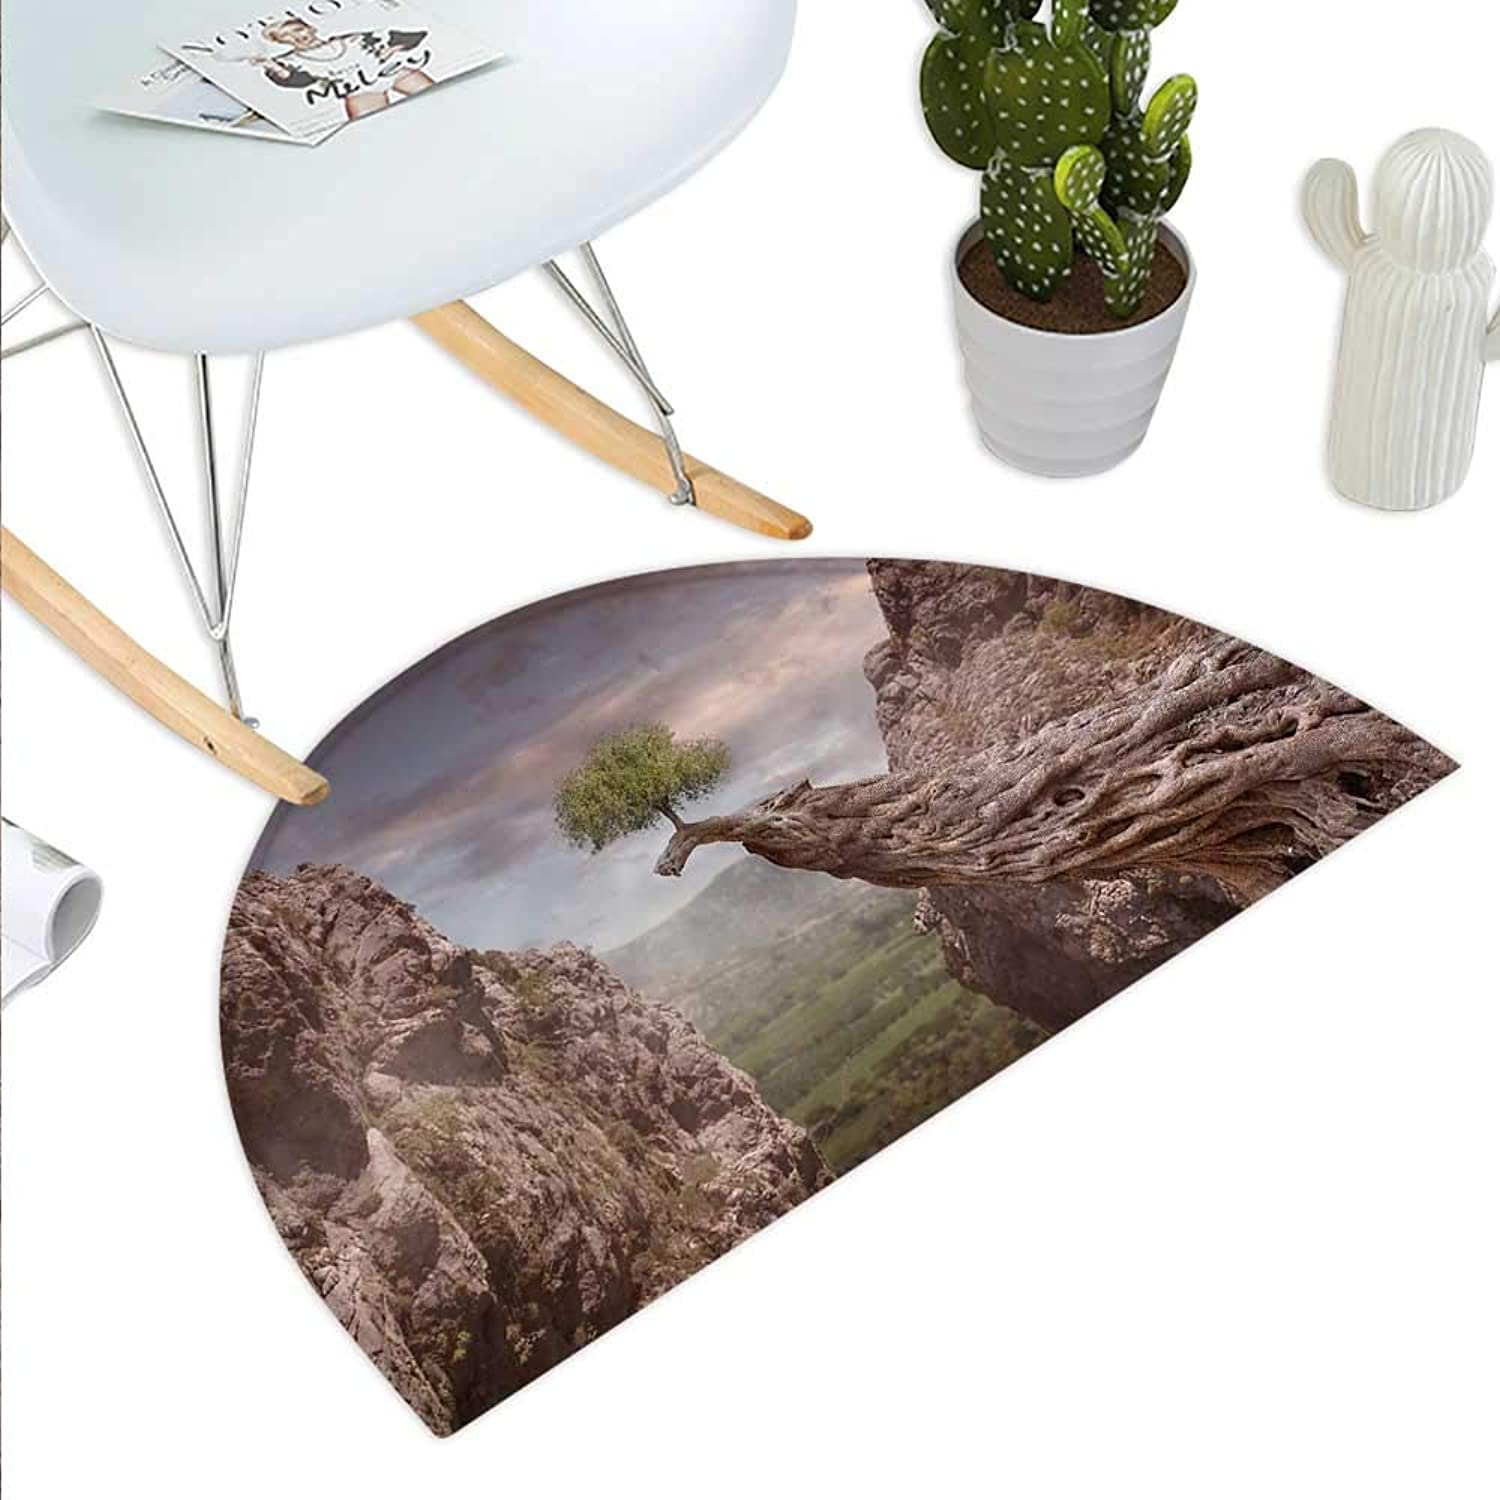 Landscape Semicircle Doormat Fantasy Theme Mystic Mountains with a Tree and Cloudy Sky Fairytale Artwork Halfmoon doormats H 43.3  xD 64.9  Umber Green bluee